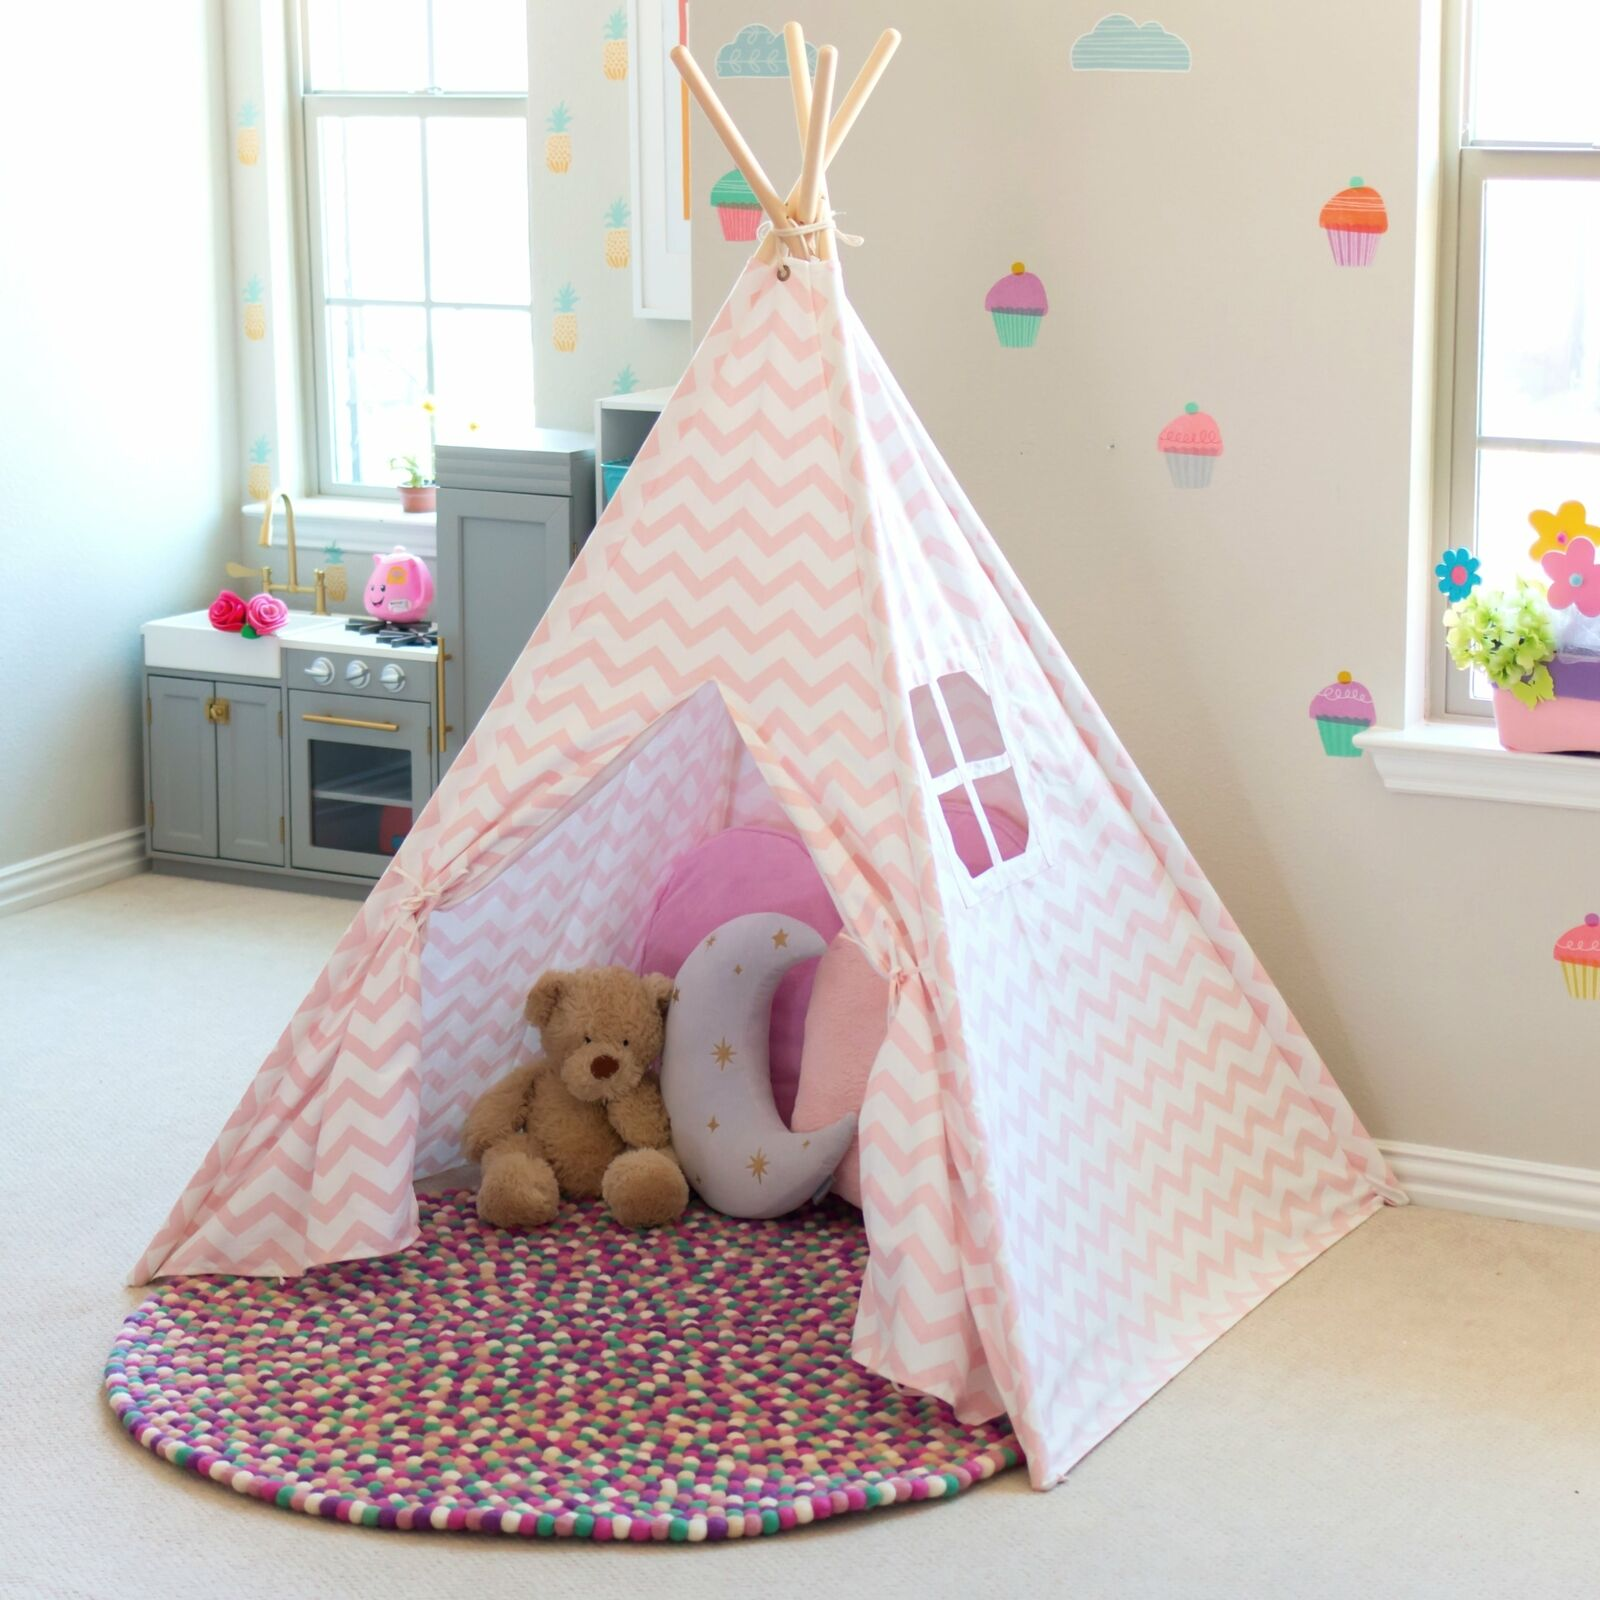 sports shoes 83310 cbc3c Details about Large Teepee Tent for Kids Pink Princess Chevron Cotton  Canvas Girls Play Tent